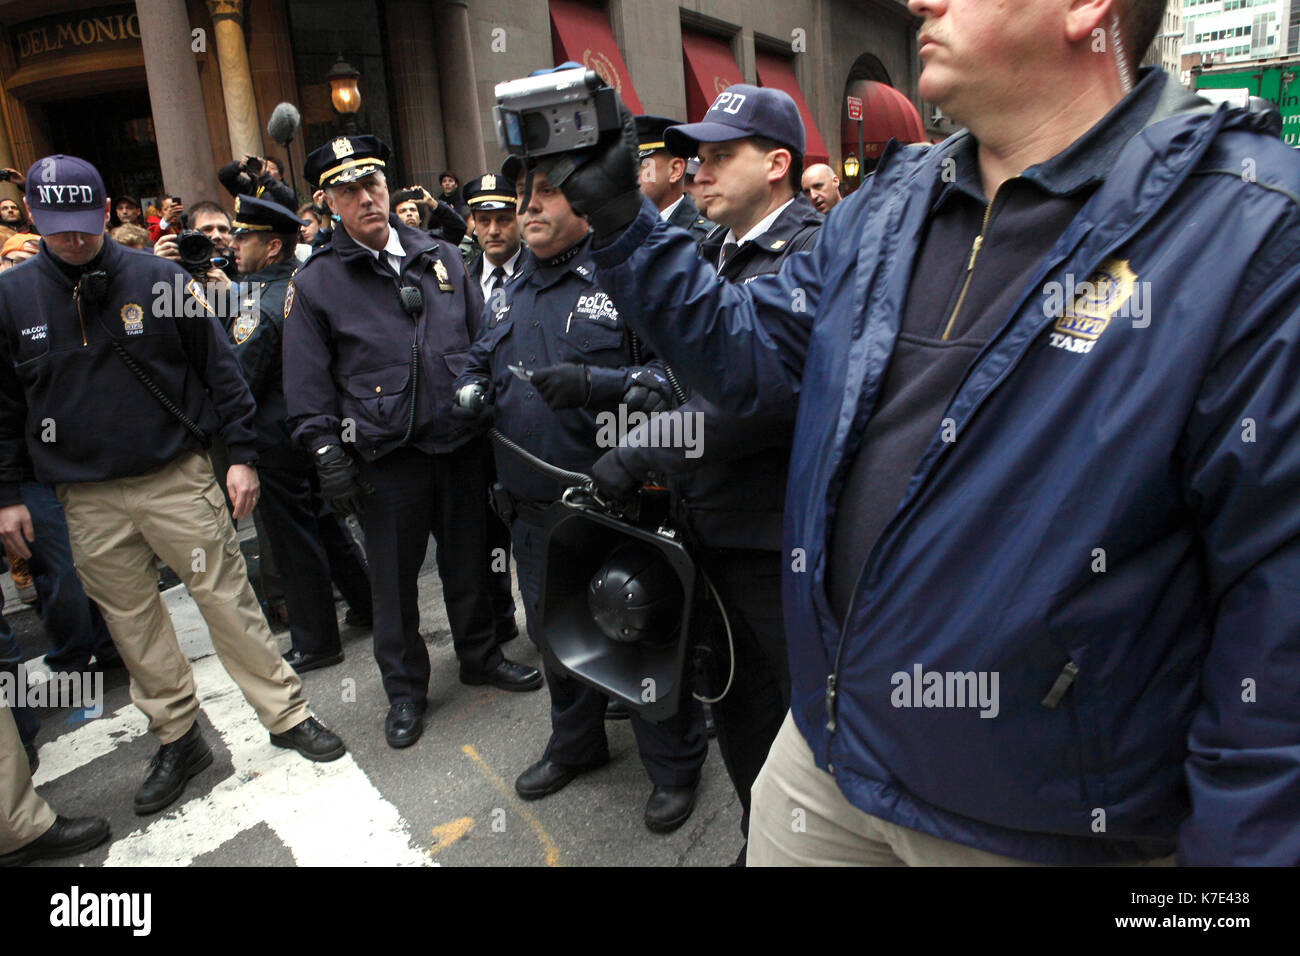 an analysis of the police corruption in the united states Police corruption essays analysis of police corruption police corruption is a complex political corruption in the united states police officers and work.